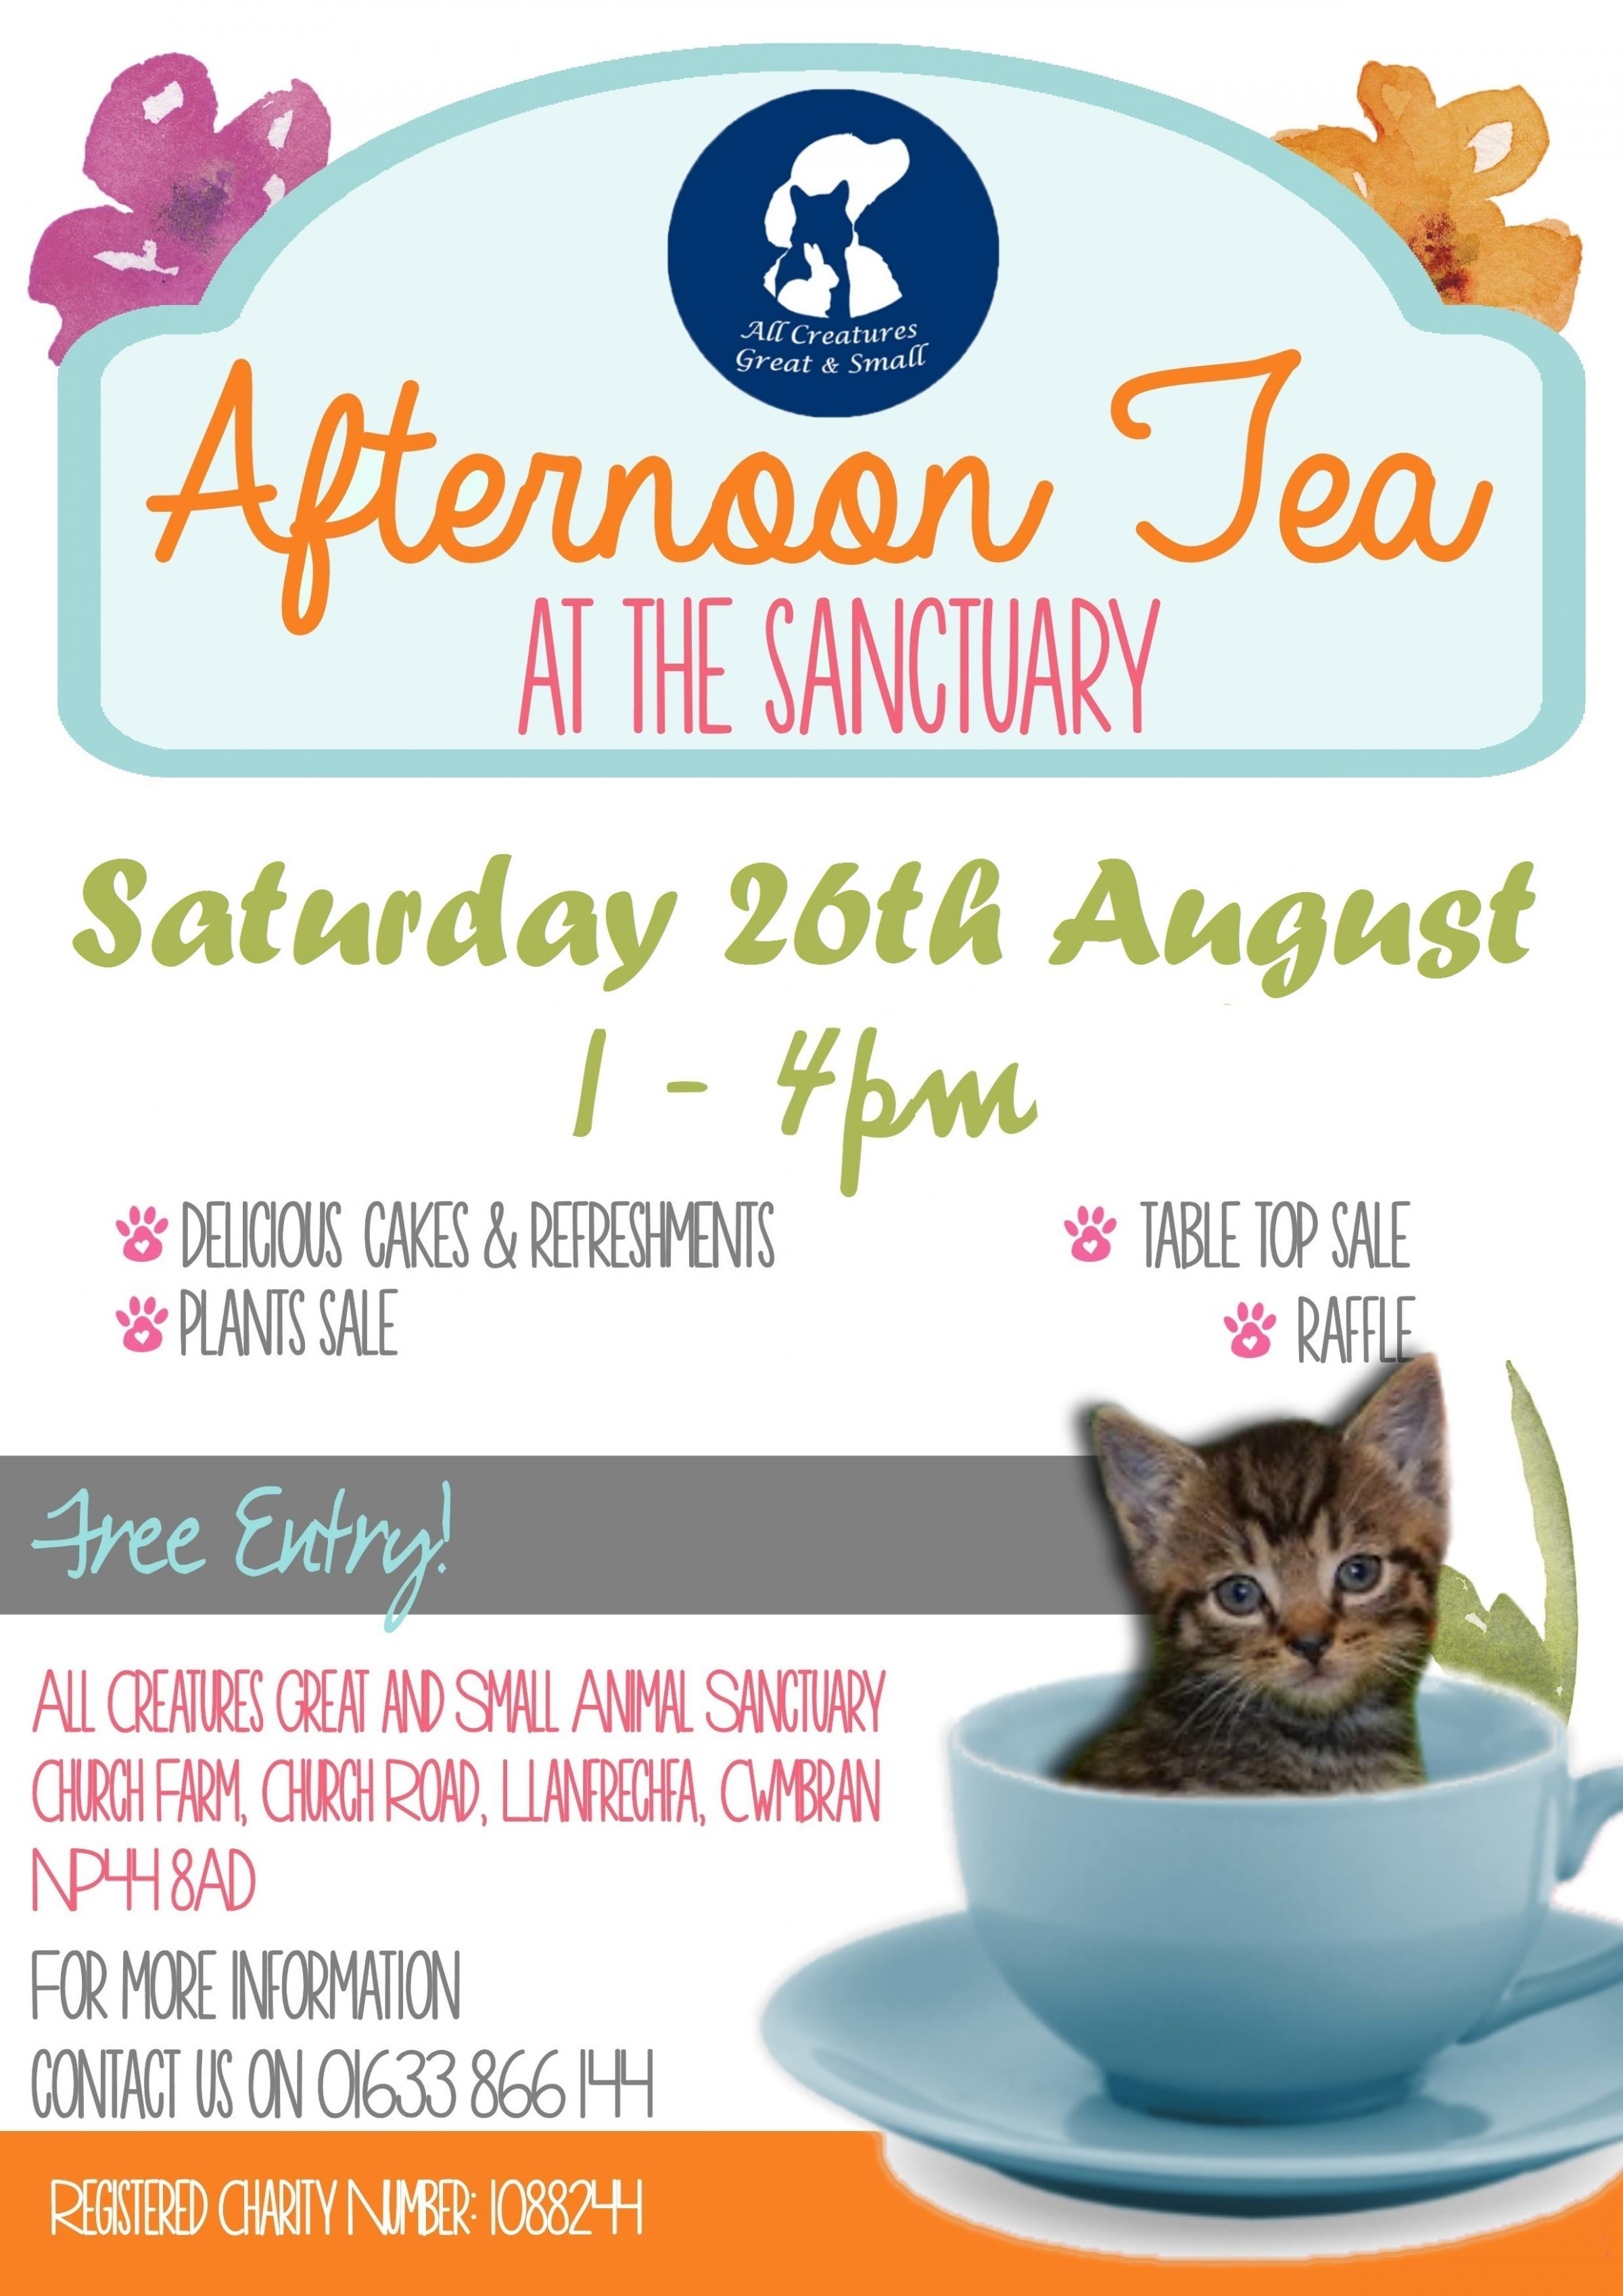 Afternoon Tea at the Sanctuary